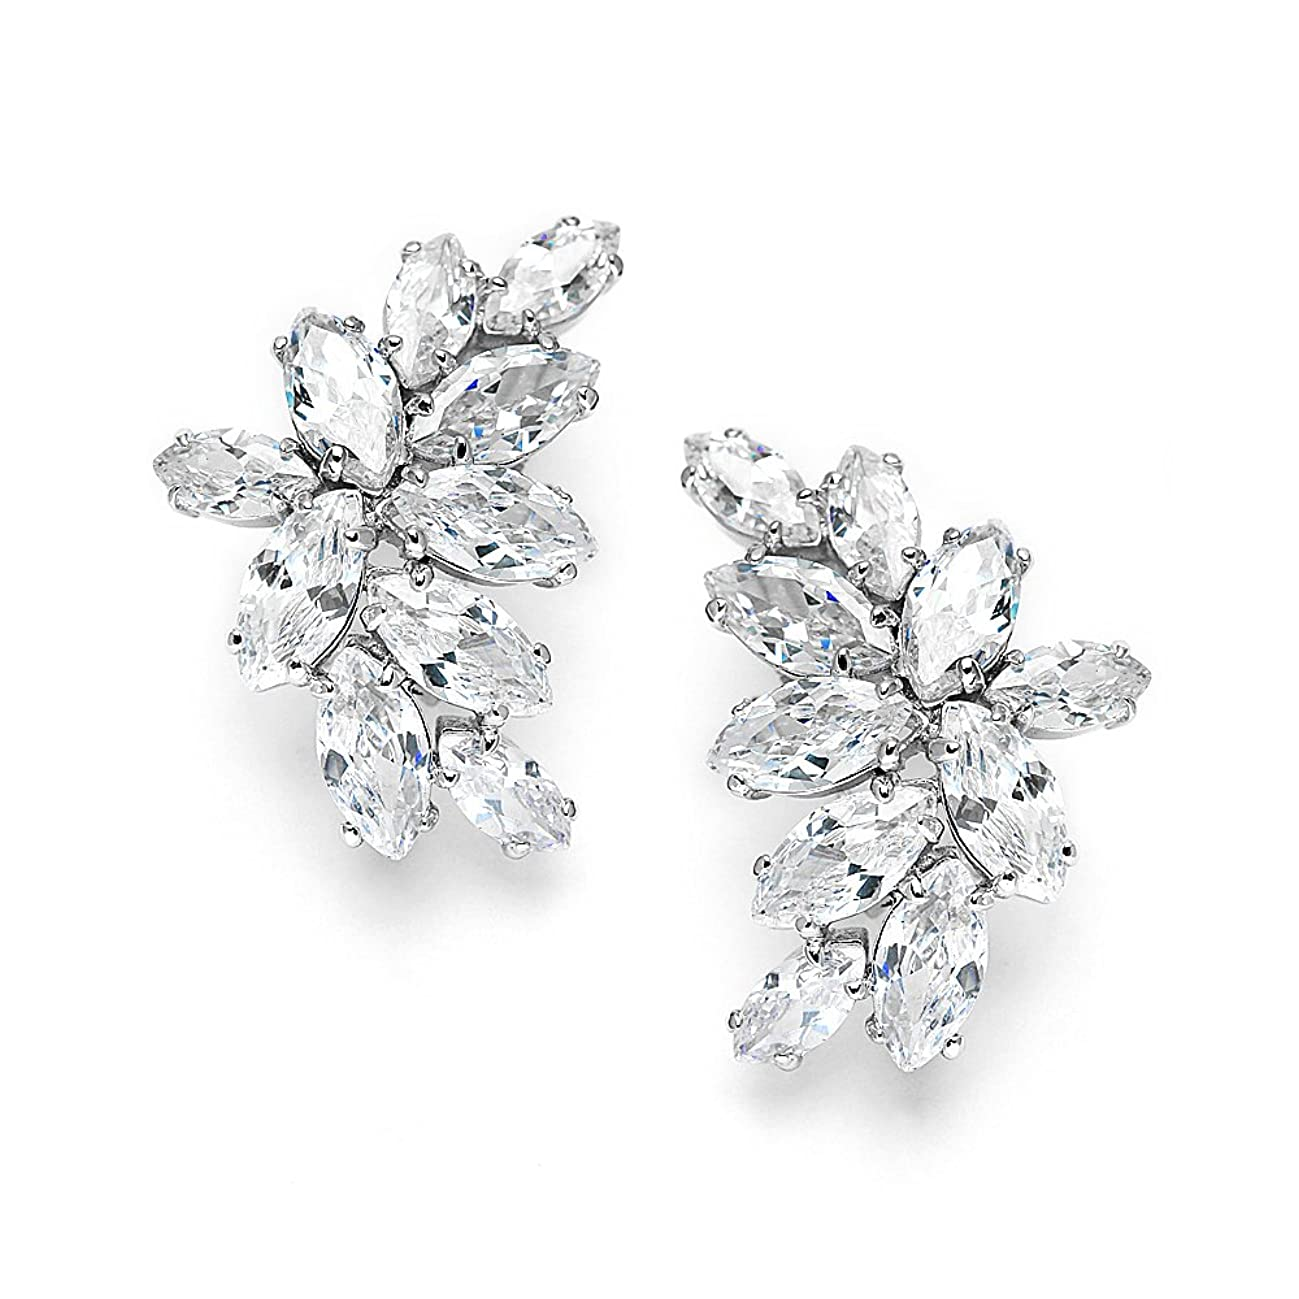 Mariell Cubic Zirconia Marquis-Cut Graceful Curved Cluster Bridal Wedding Earrings - Platinum Plated